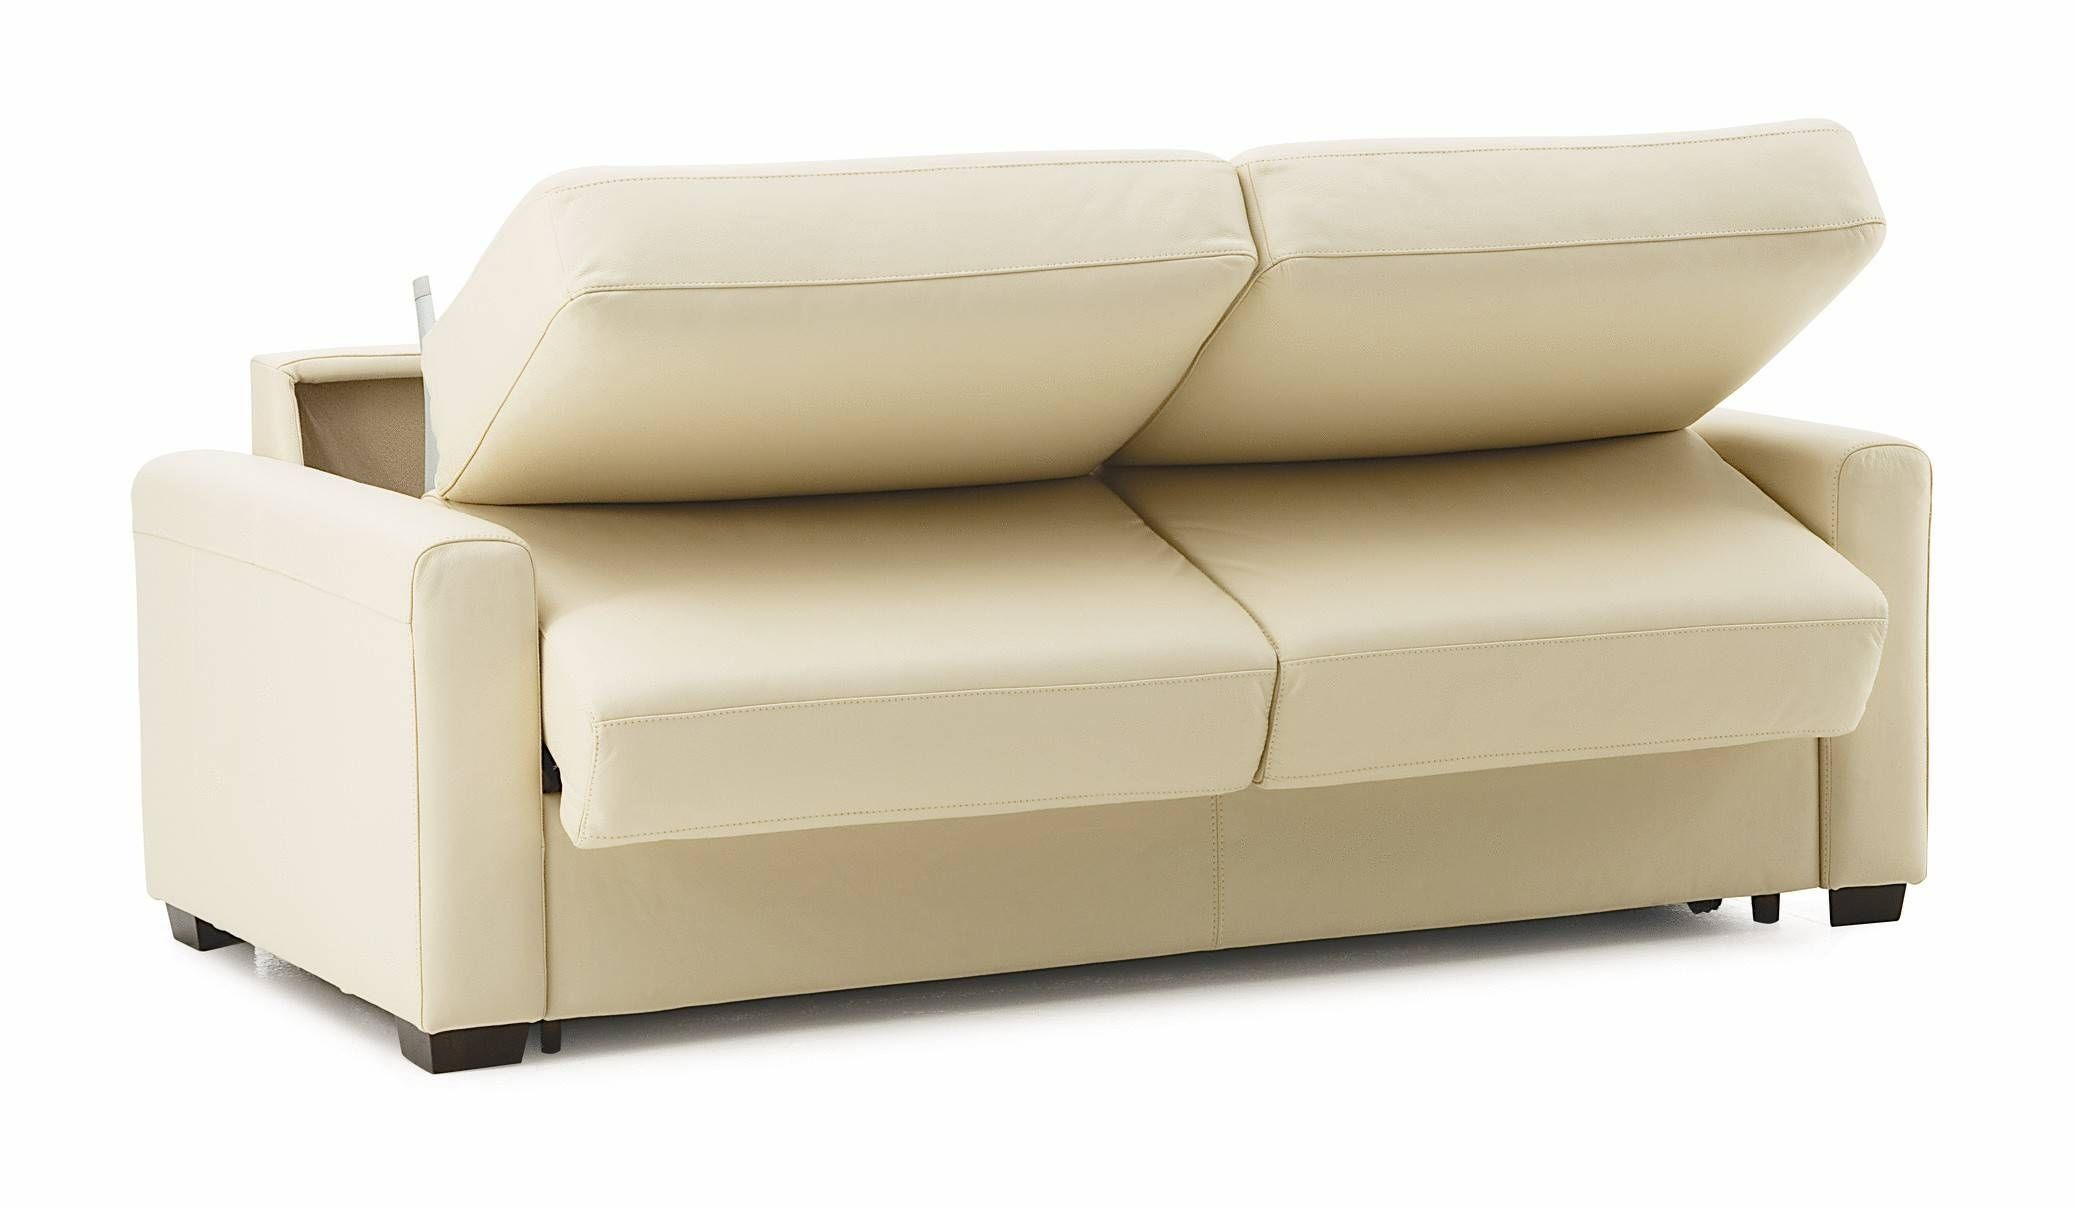 incredible american leather sleeper sofa reviews pattern-Sensational American Leather Sleeper sofa Reviews Layout